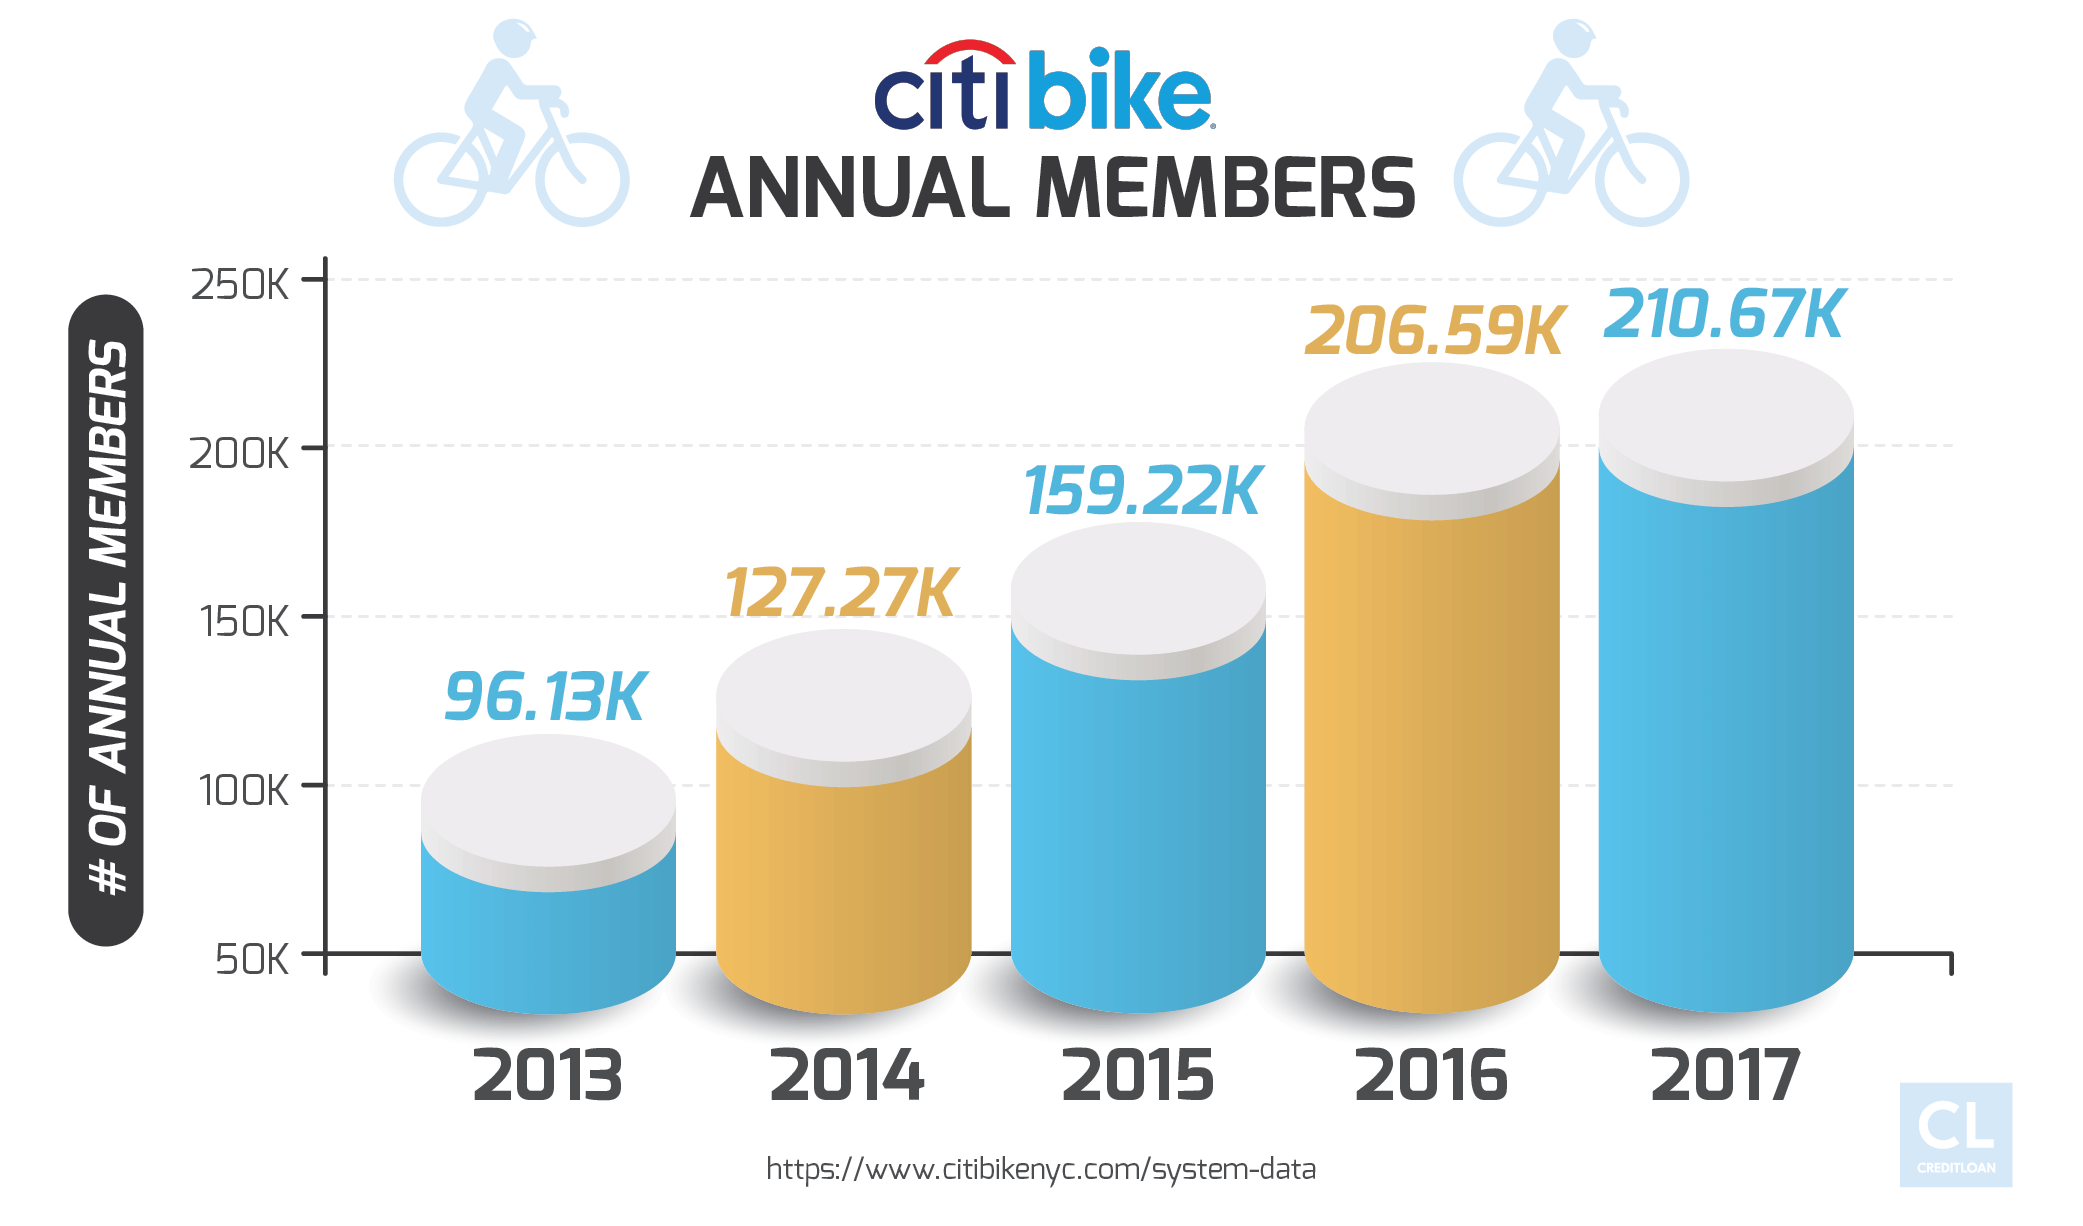 Citi Bike Annual Members from 2013-2017